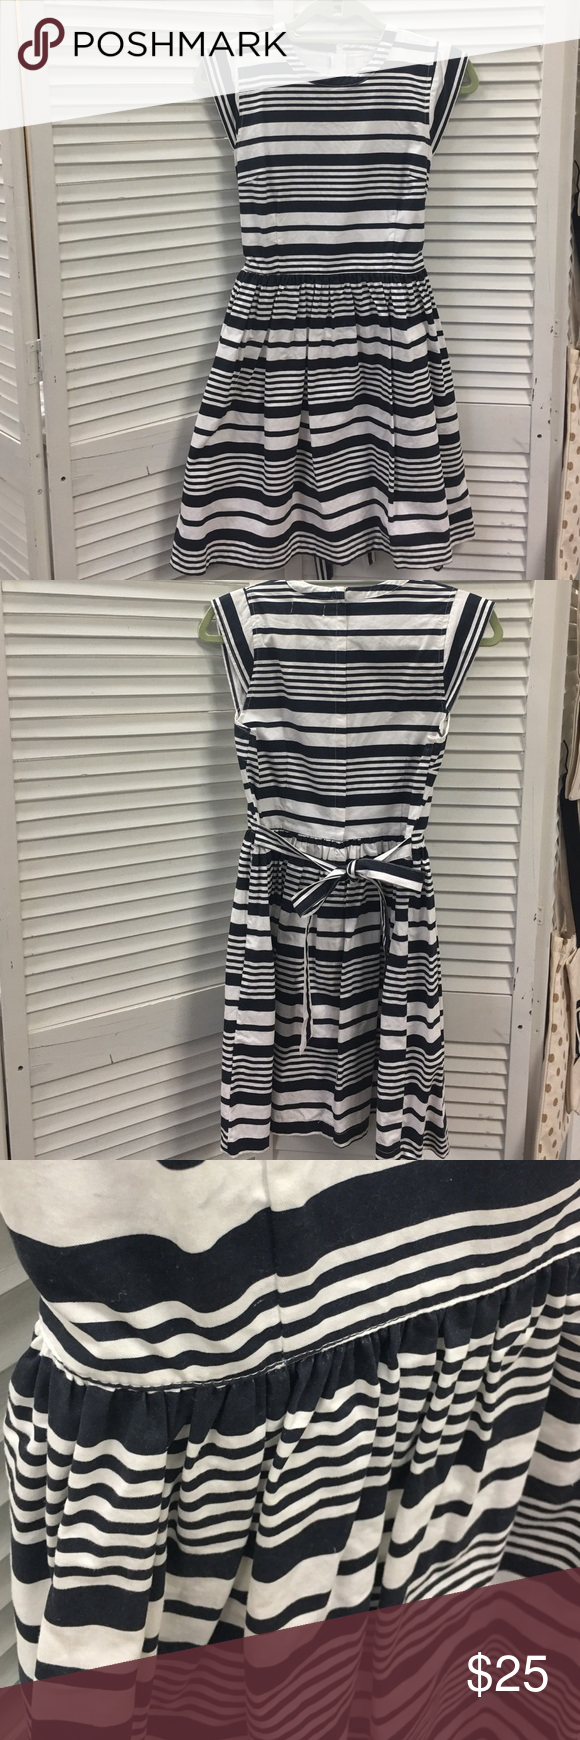 """Freeway Navy Striped Dress Purchased from Modcloth the brand is freeway. I believe it's the Jonah Dress. Navy and white stripes, zipper up the back. Cap sleeves. Waist tie can be tied front or back. I noticed there are a few very faint blue smudges on the white. You can see in last pic. It must have came like that, was only worn once. Laying flat: Bust 18"""" Waist 15"""". Will fit small or medium. ModCloth Dresses"""